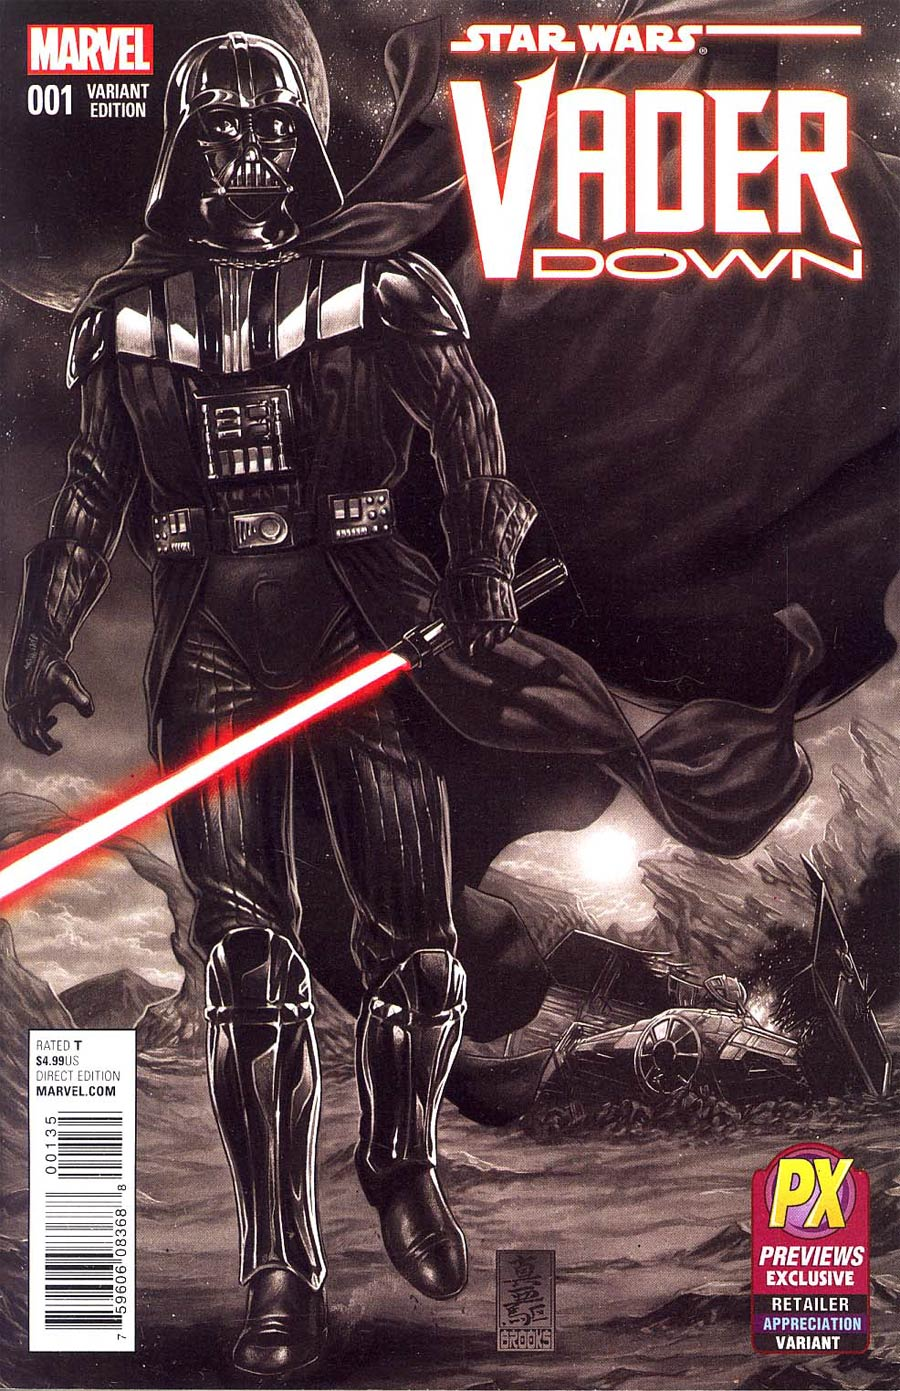 Star Wars Vader Down #1 Cover P Previews Exclusive Retailer Appreciation Variant Cover (Vader Down Part 1)